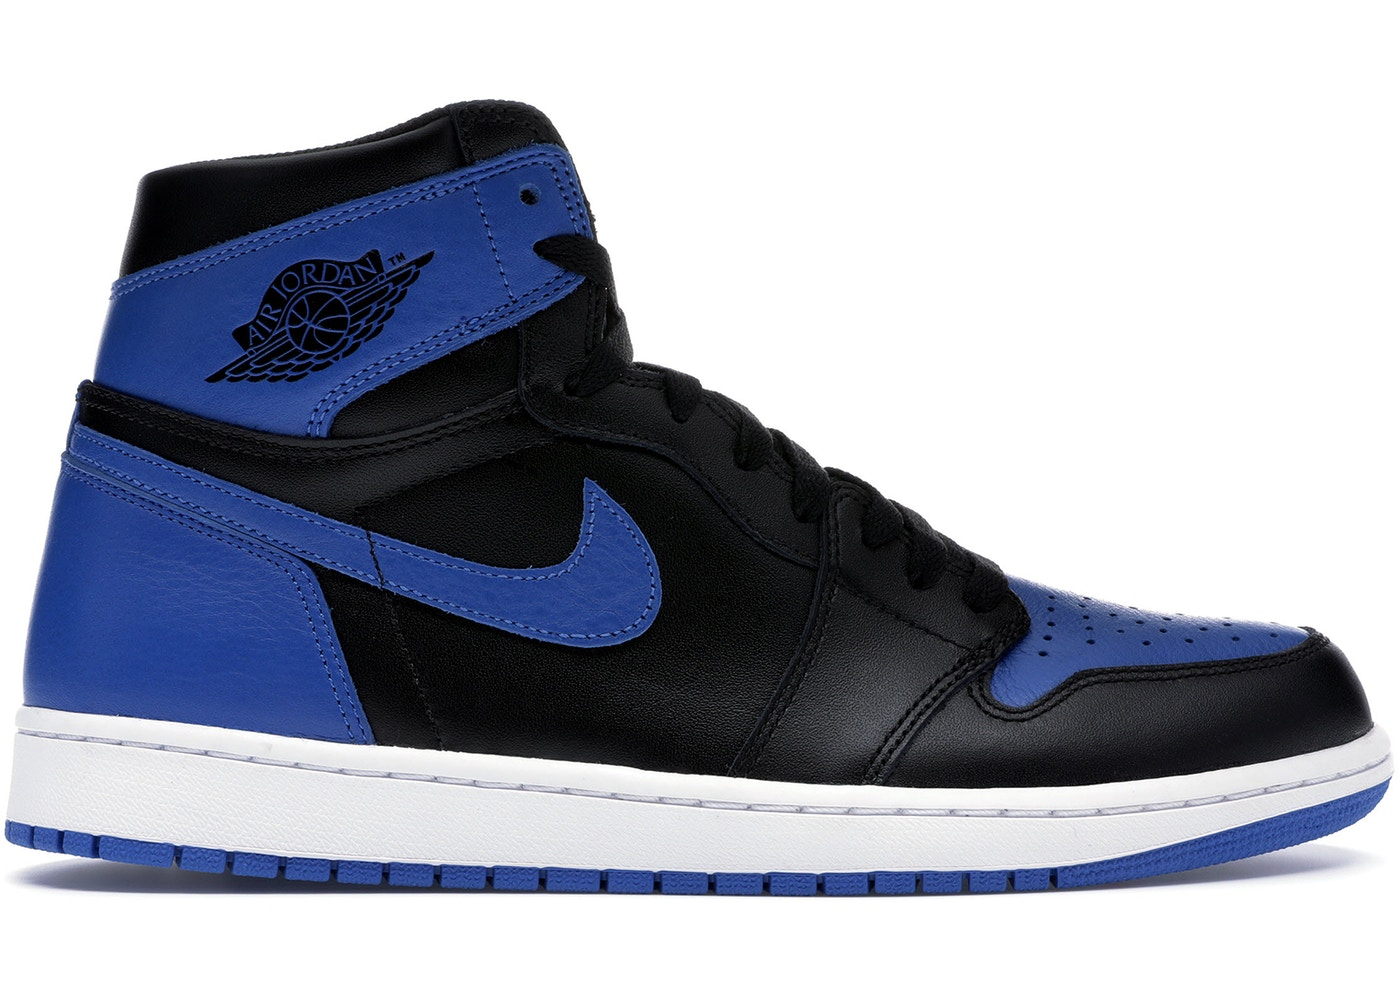 efdae31924e Jordan 1 Retro Royal (2017) - 555088-007